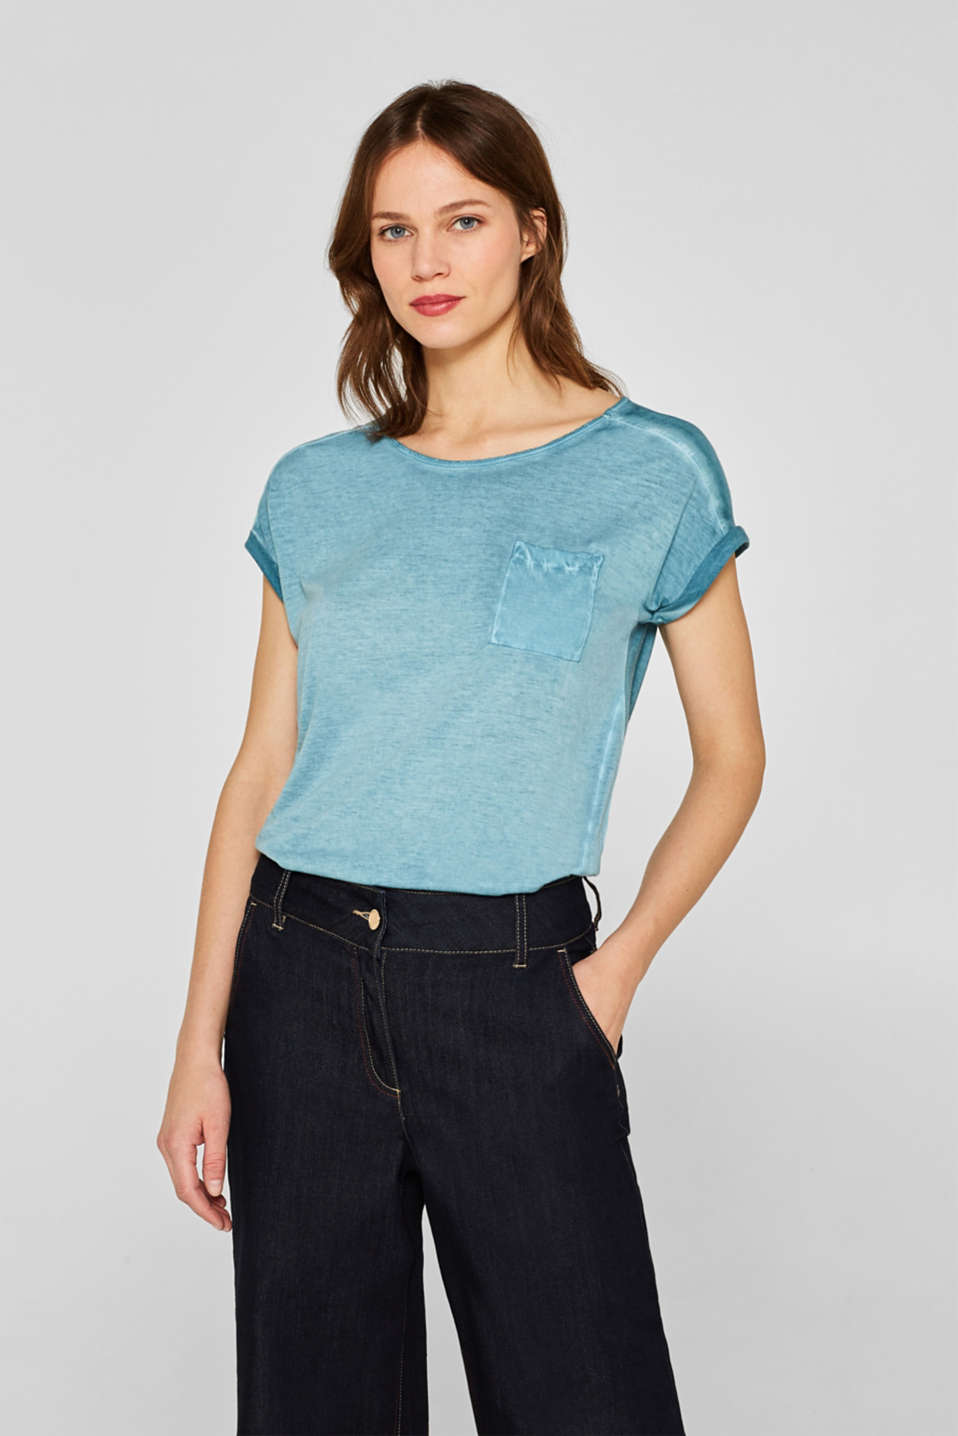 T-shirt in blended fabric with a breast pocket, TEAL BLUE 4, detail image number 0